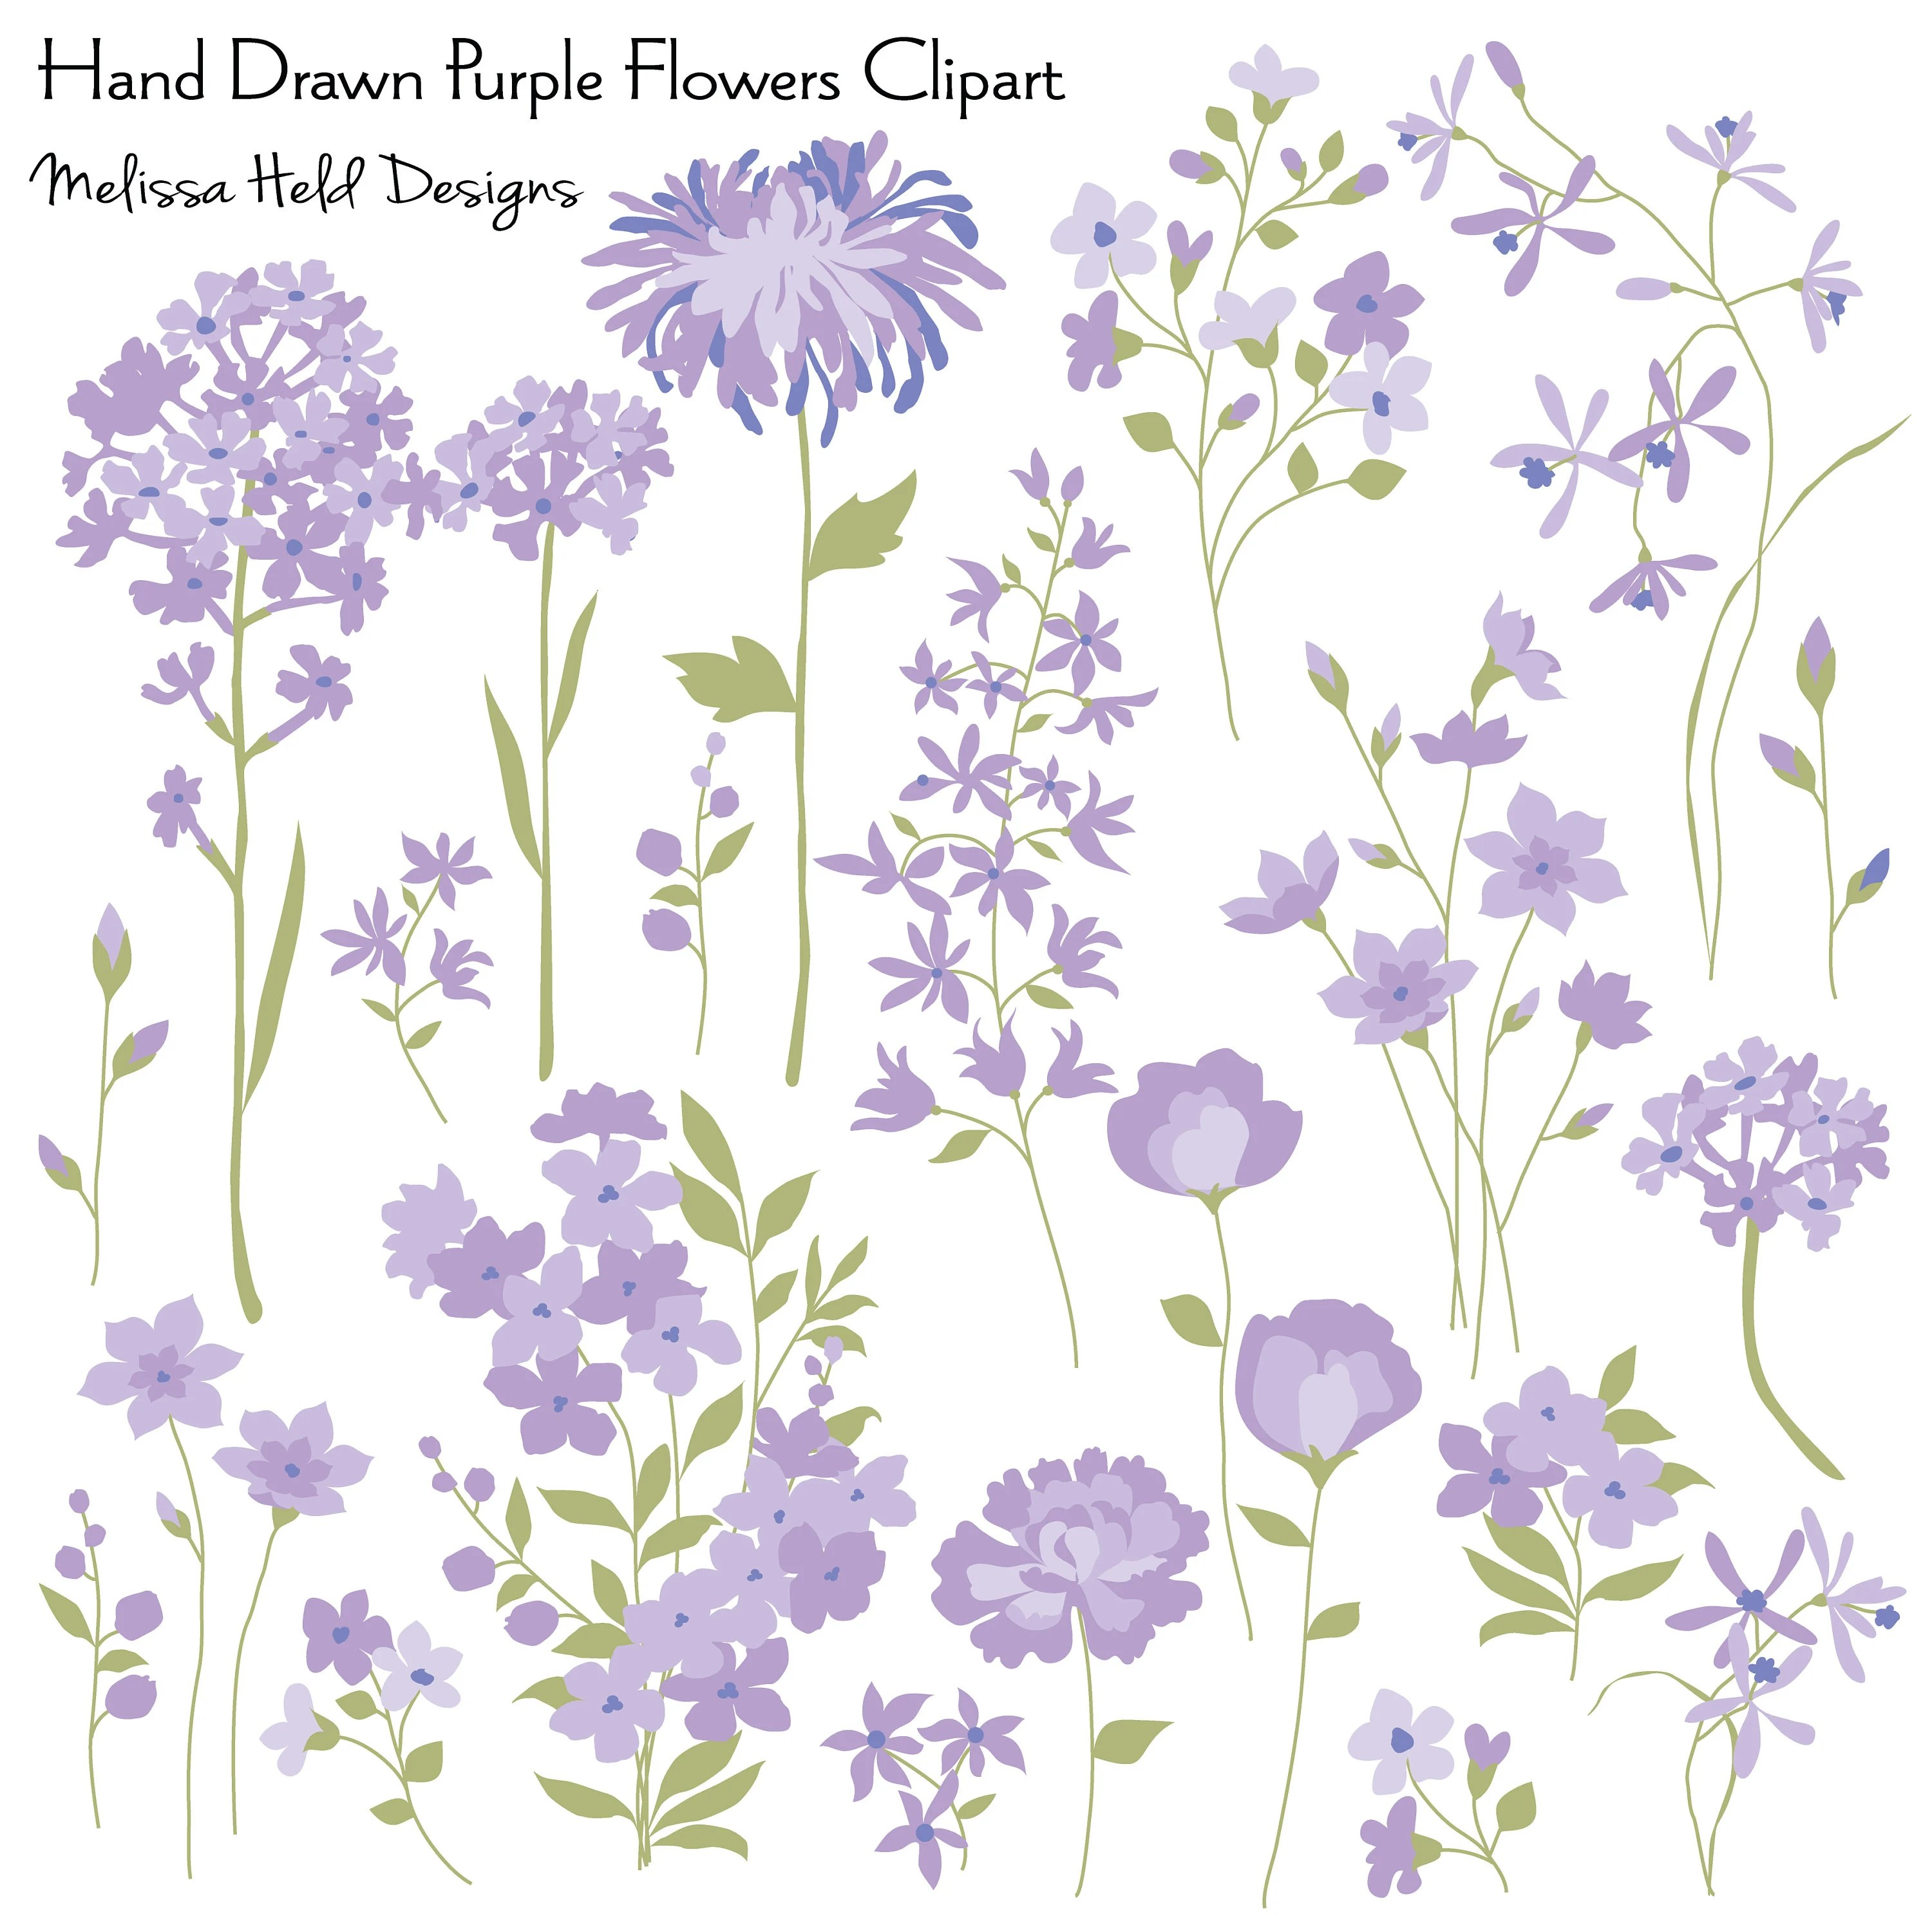 Hand Drawn Purple Flowers Clipart Etsy